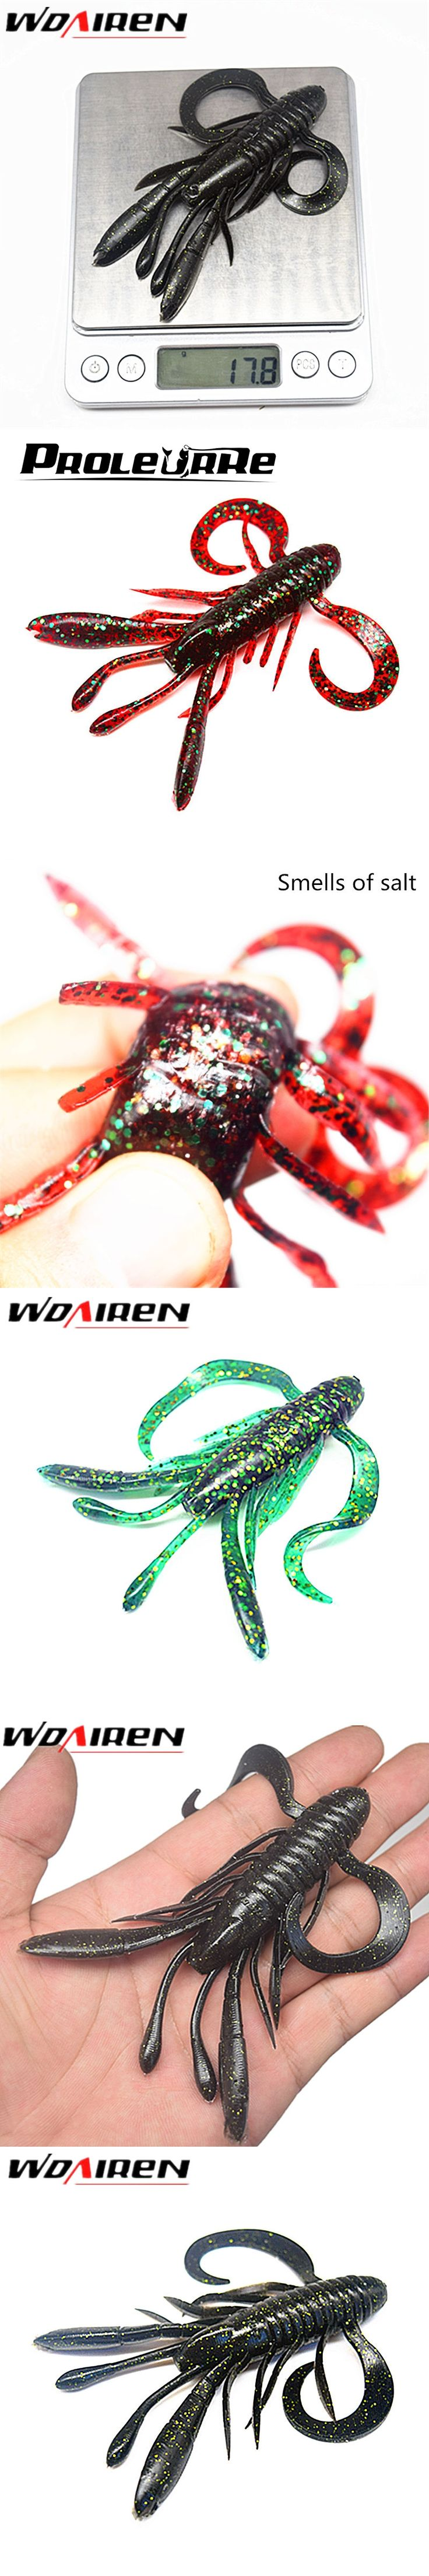 1Pcs 10cm 17.8g soft baits fishing lures soft lure jig wobbler swivel rubber lure fishing worms salt smell soft shrimp bass lure